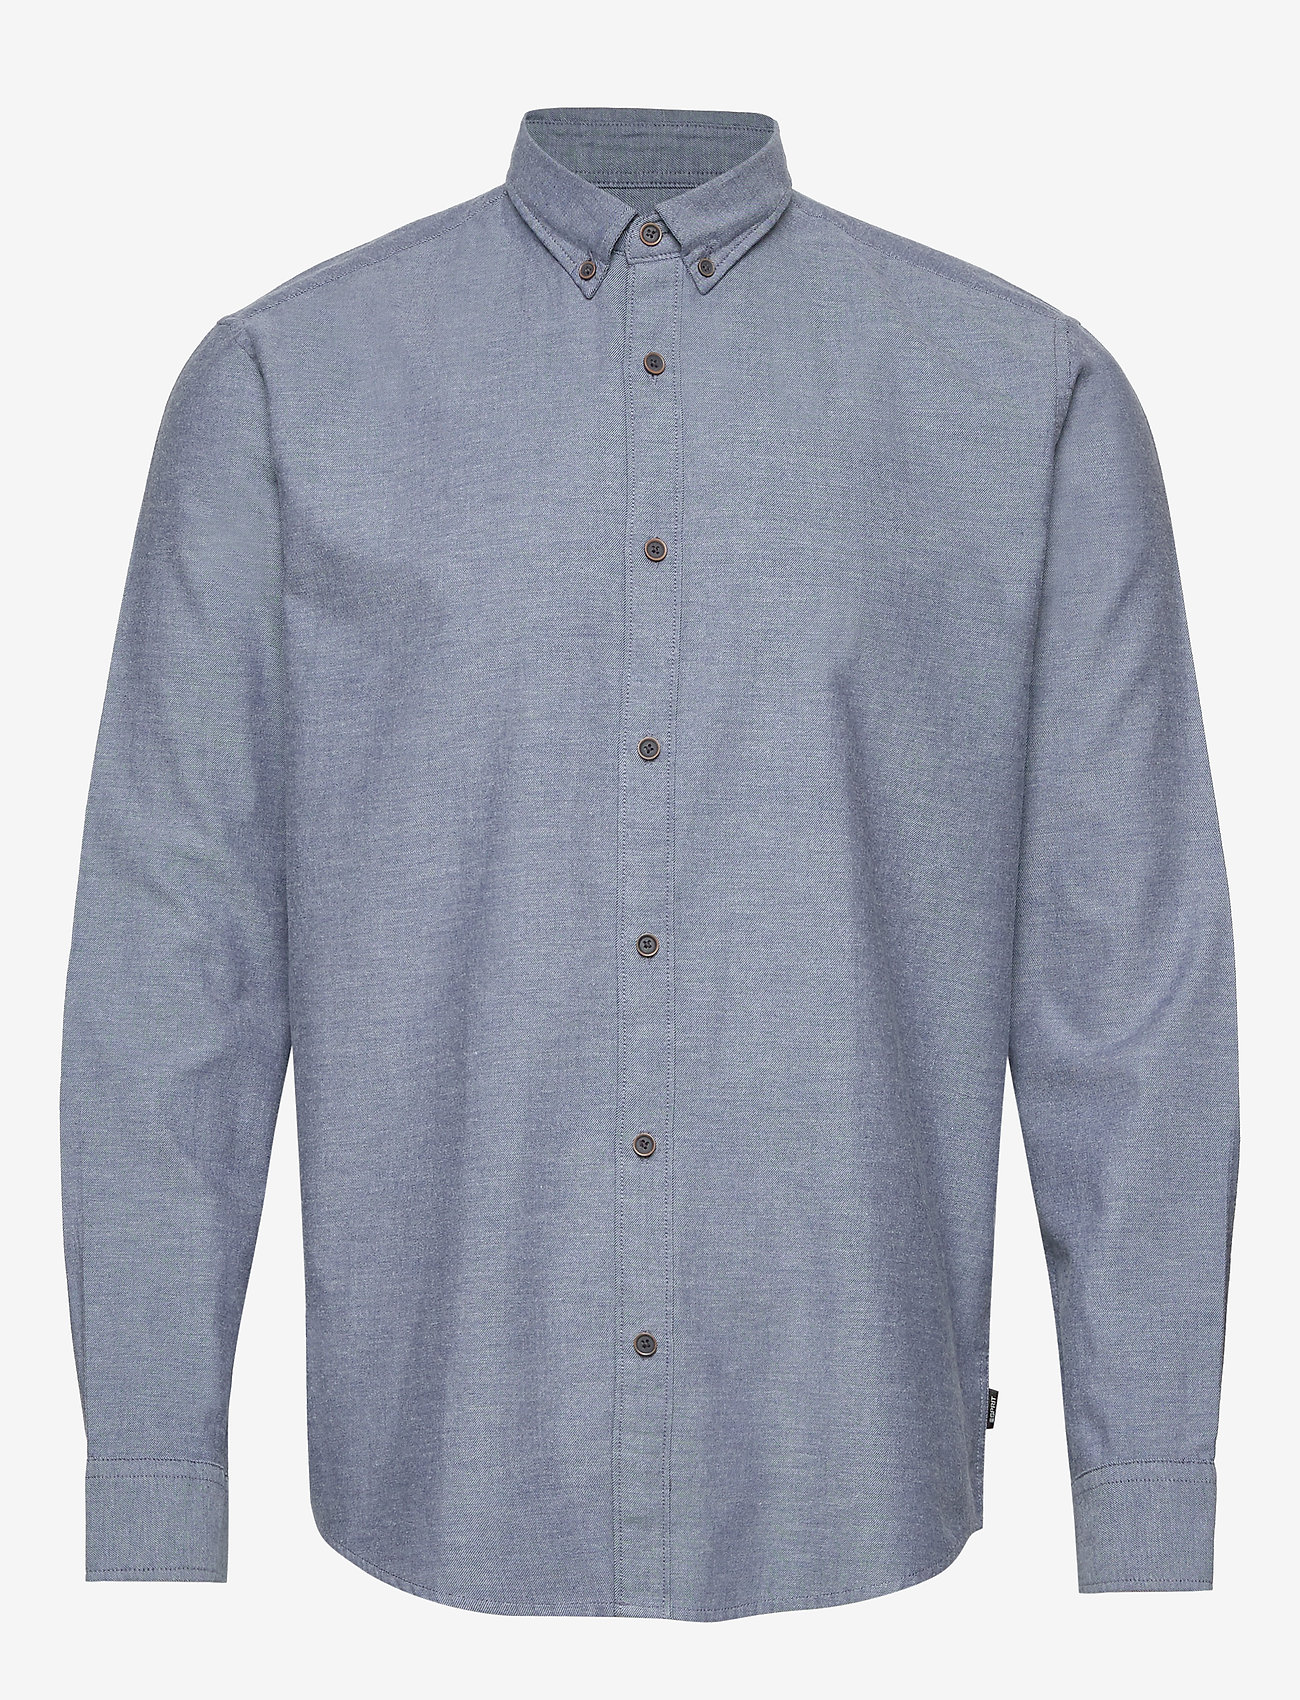 Esprit Casual - Shirts woven - basic shirts - blue 5 - 0